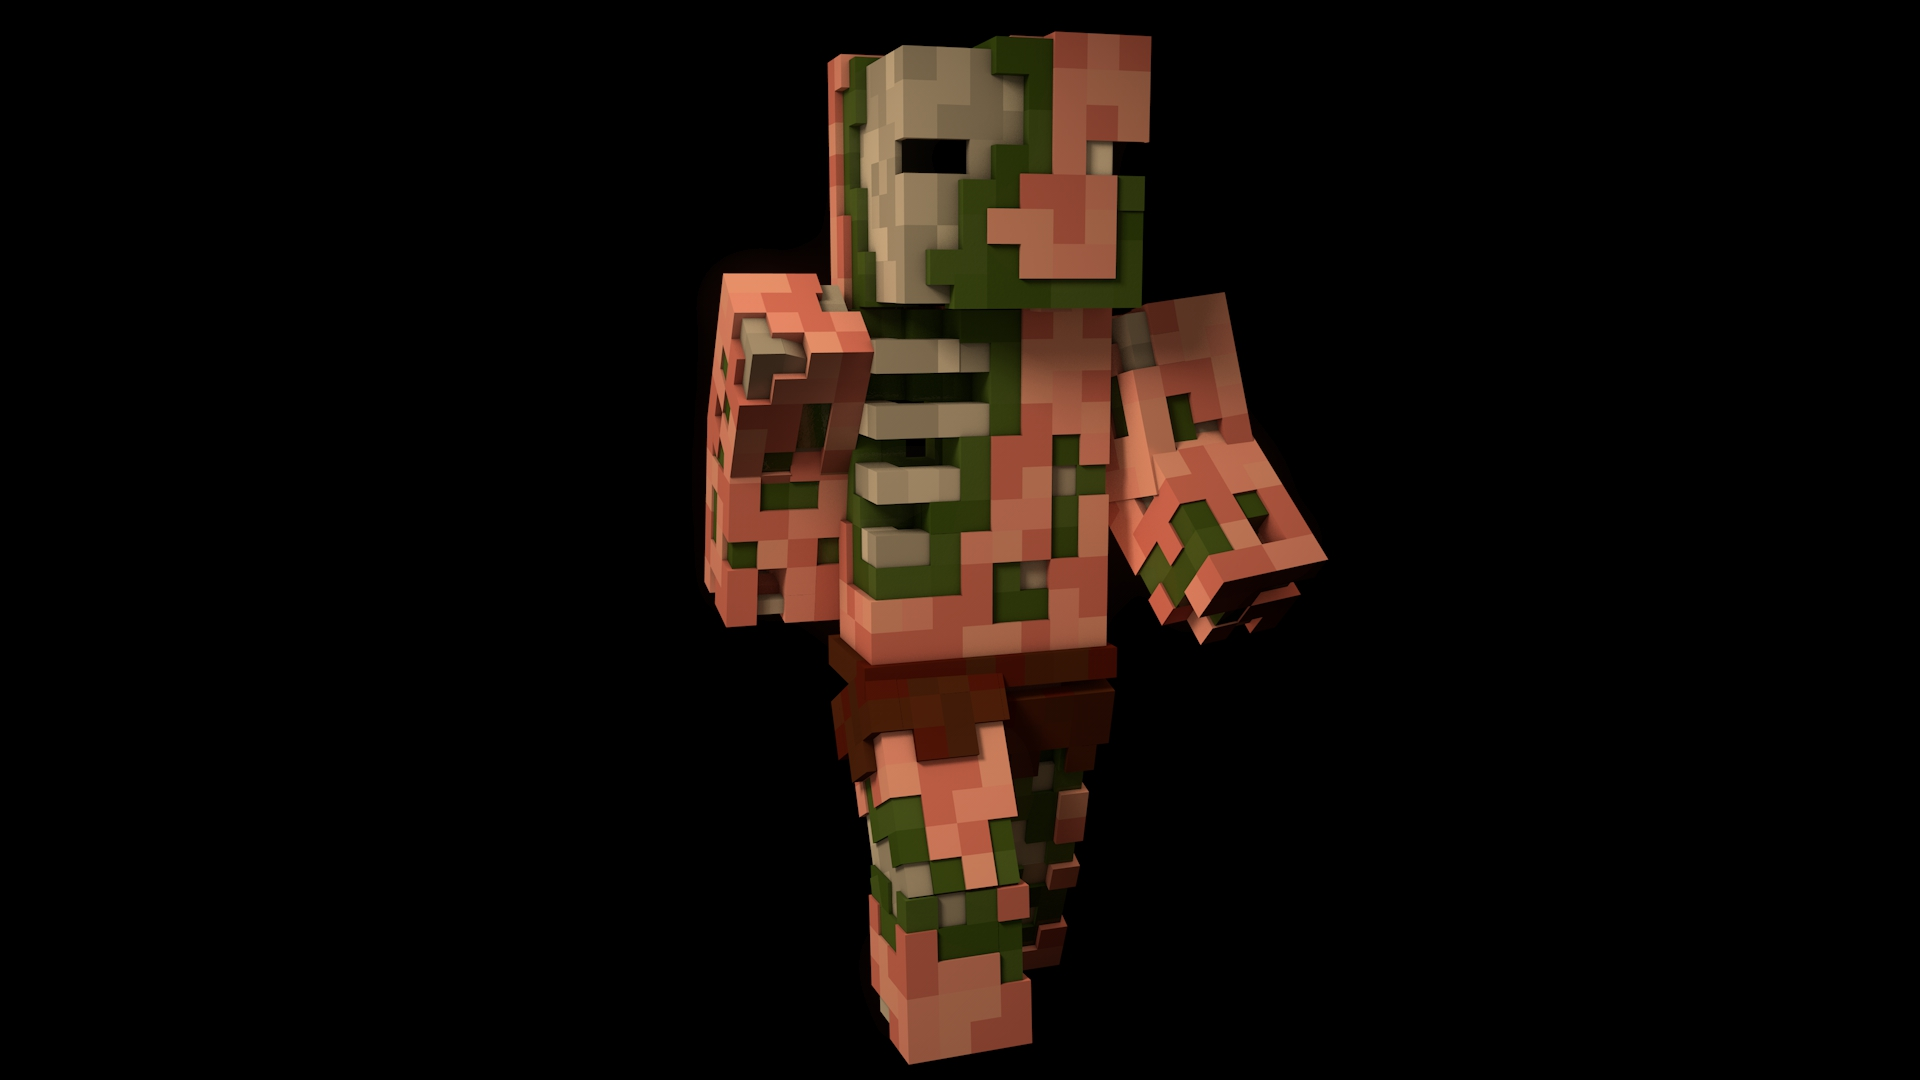 cool wallpapers of minecraft zombies - photo #18